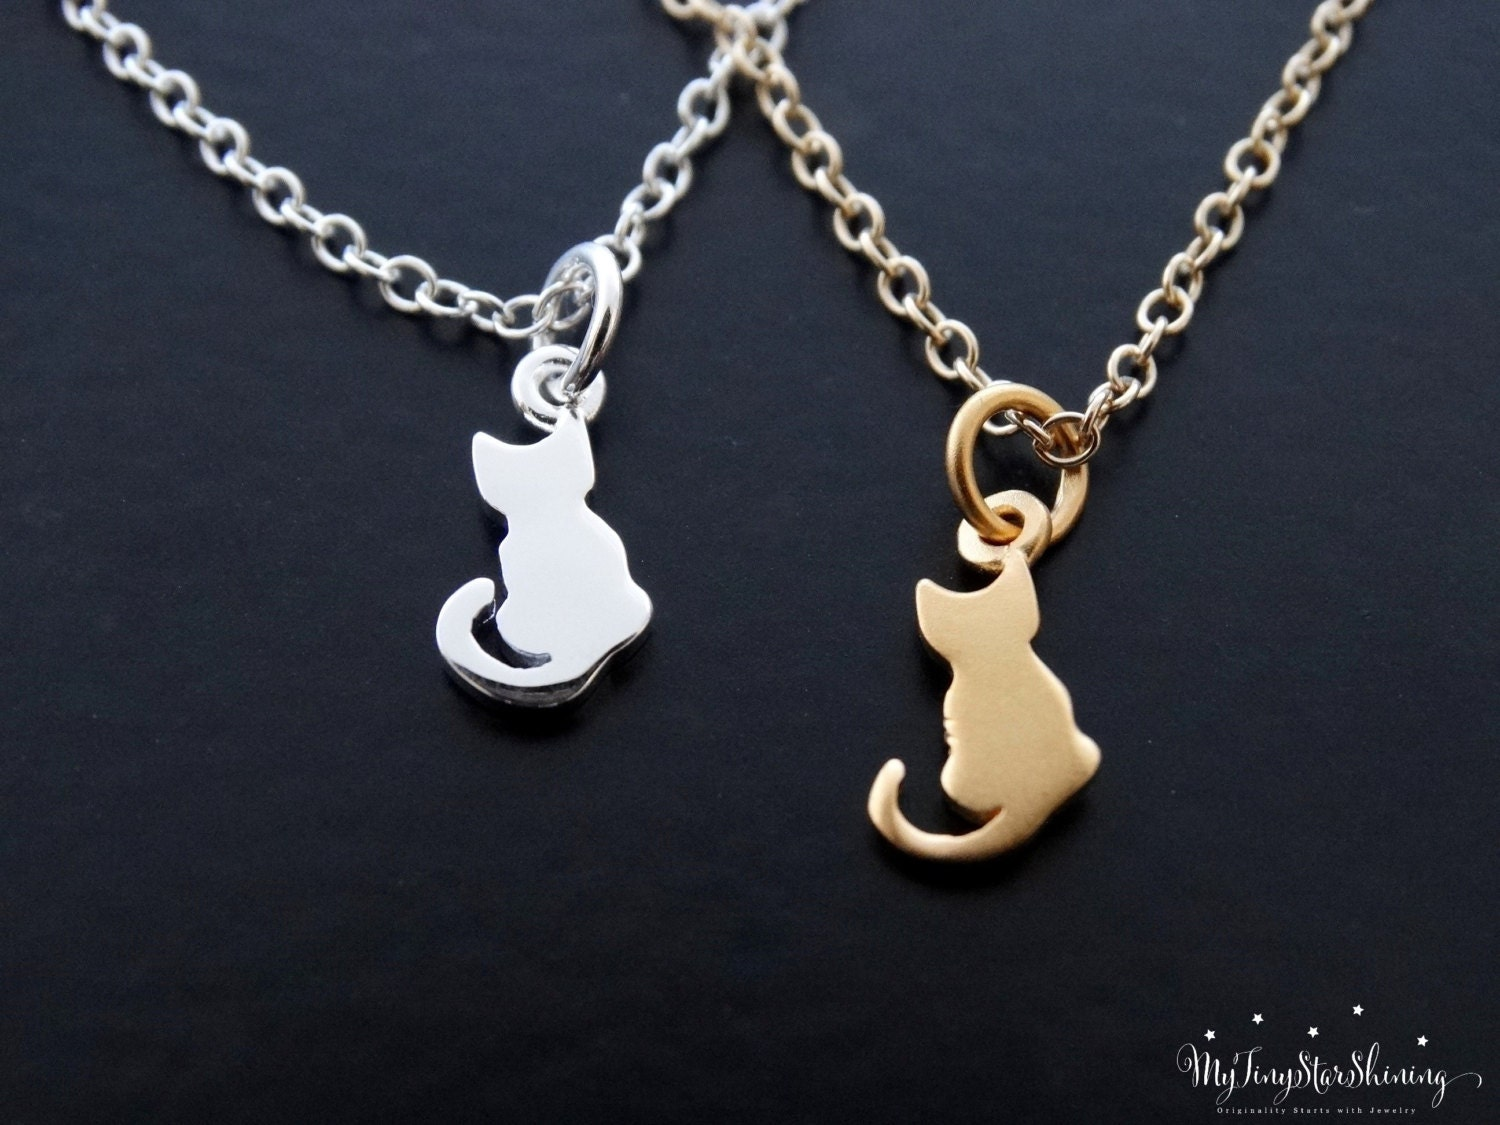 Cat necklace silver cat jewelry pet lover necklace cat pendant cat necklace silver cat jewelry pet lover necklace cat pendant necklace gold cat gold filled necklace or sterling silver aloadofball Gallery